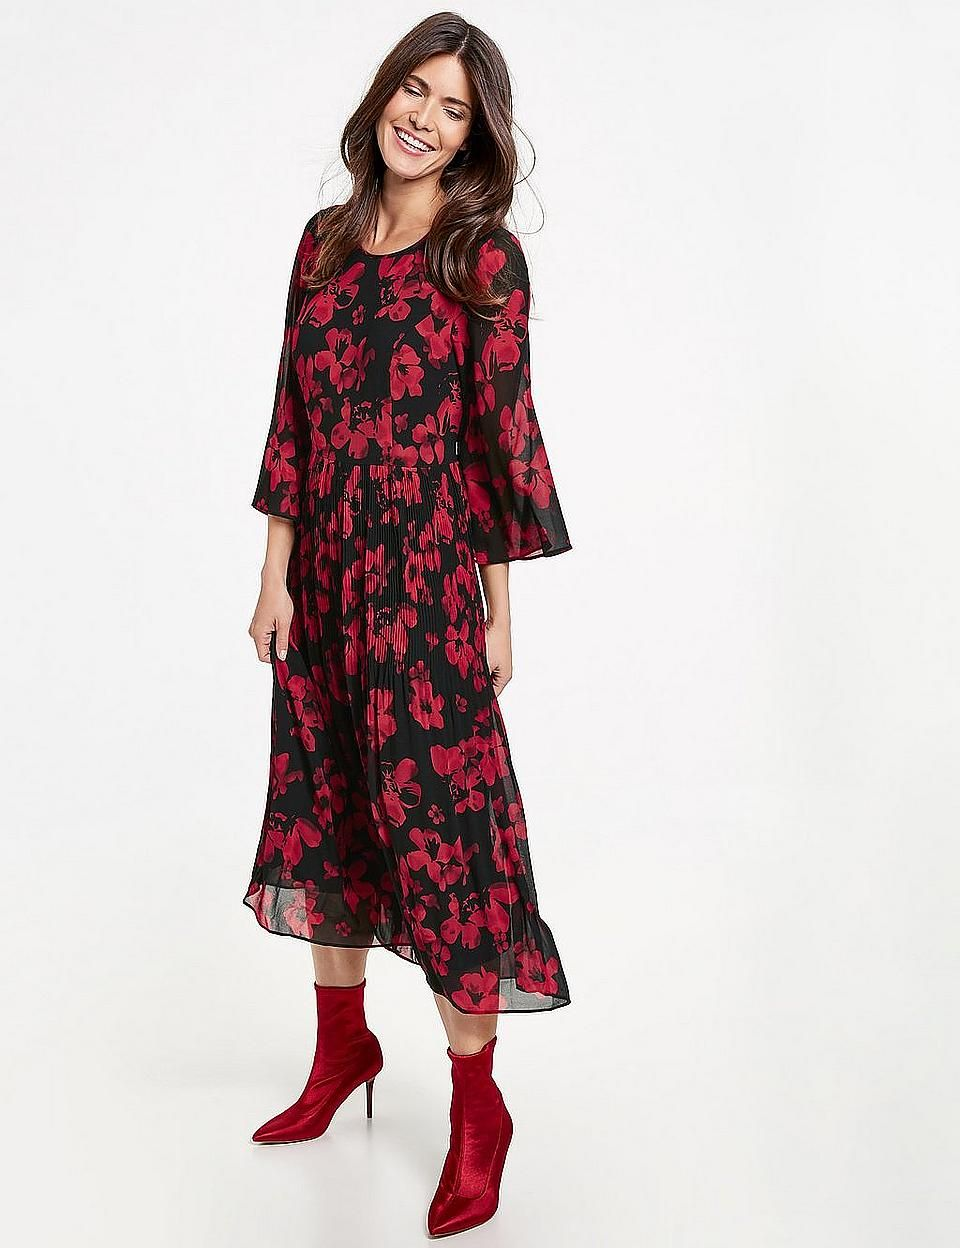 gerry weber kleid rot new arrivals 50f12 0b7f7